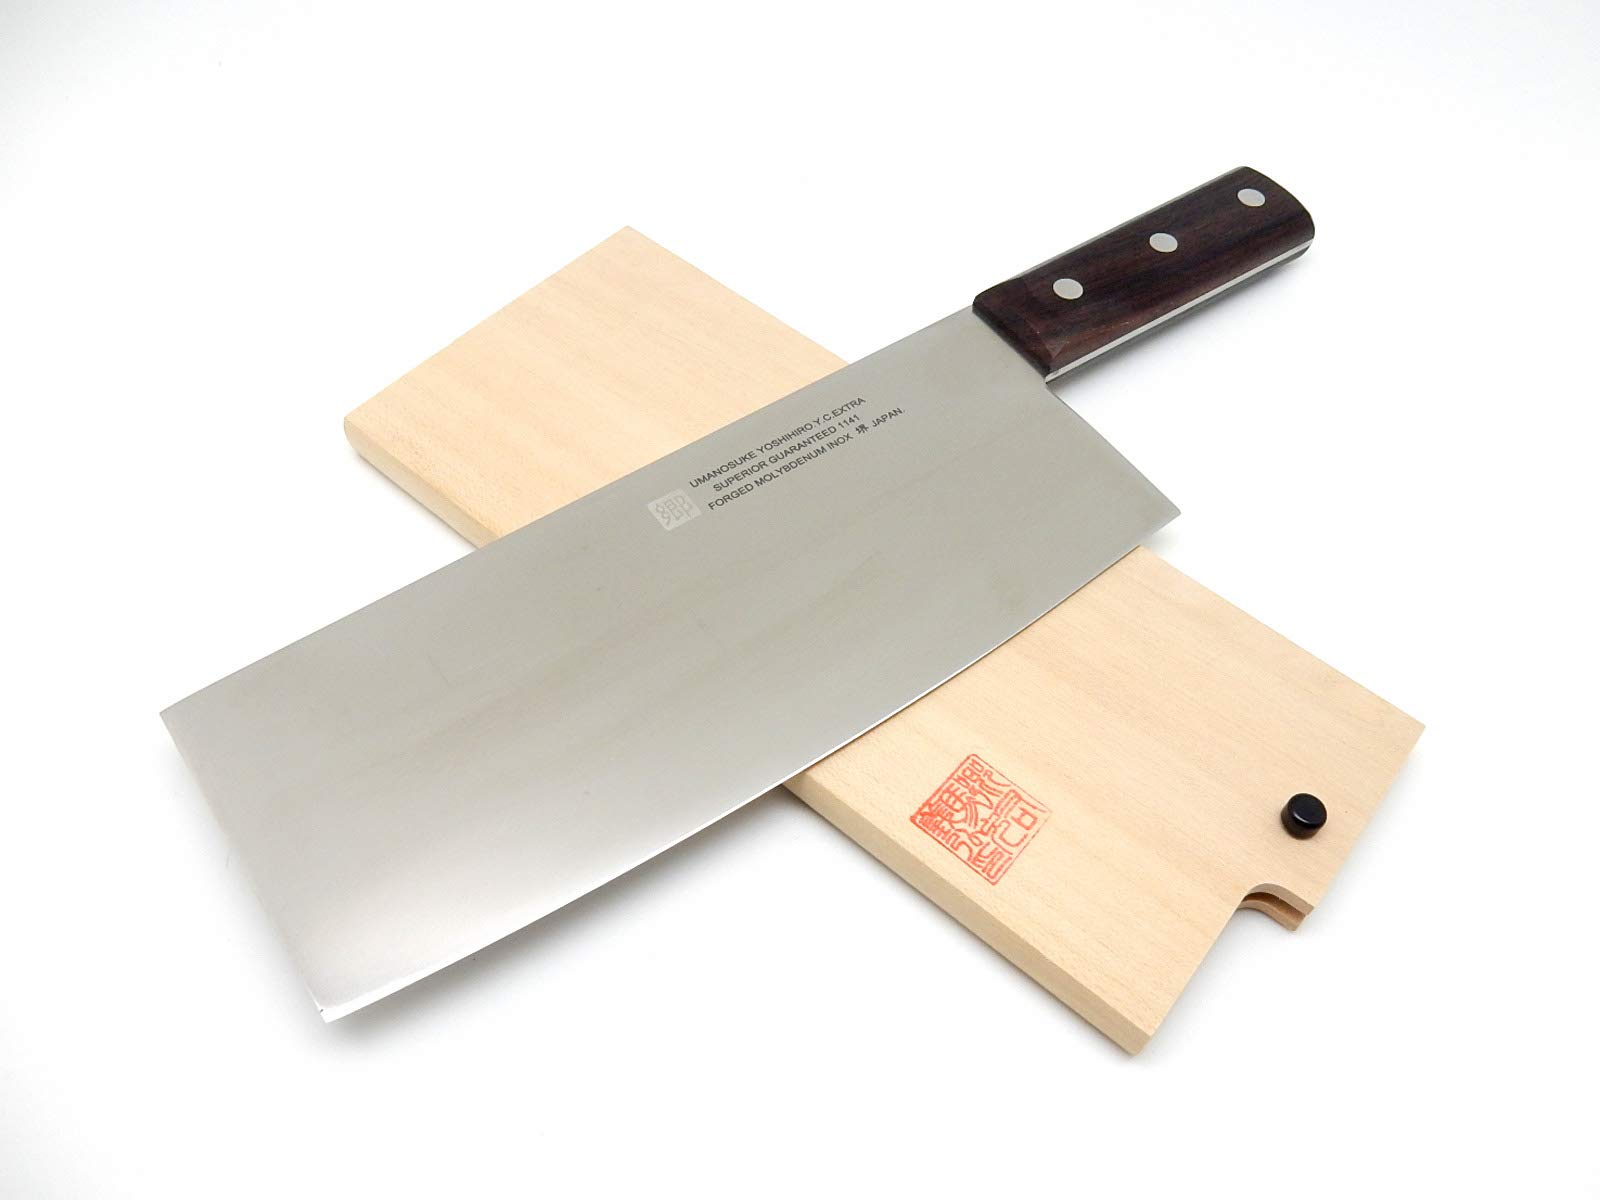 Yoshihiro 8A Mo.V Steel, INOX 1141 Guranteed Chinese Cleaver Knife 220mm/8.7'', with Wooden Saya Cover